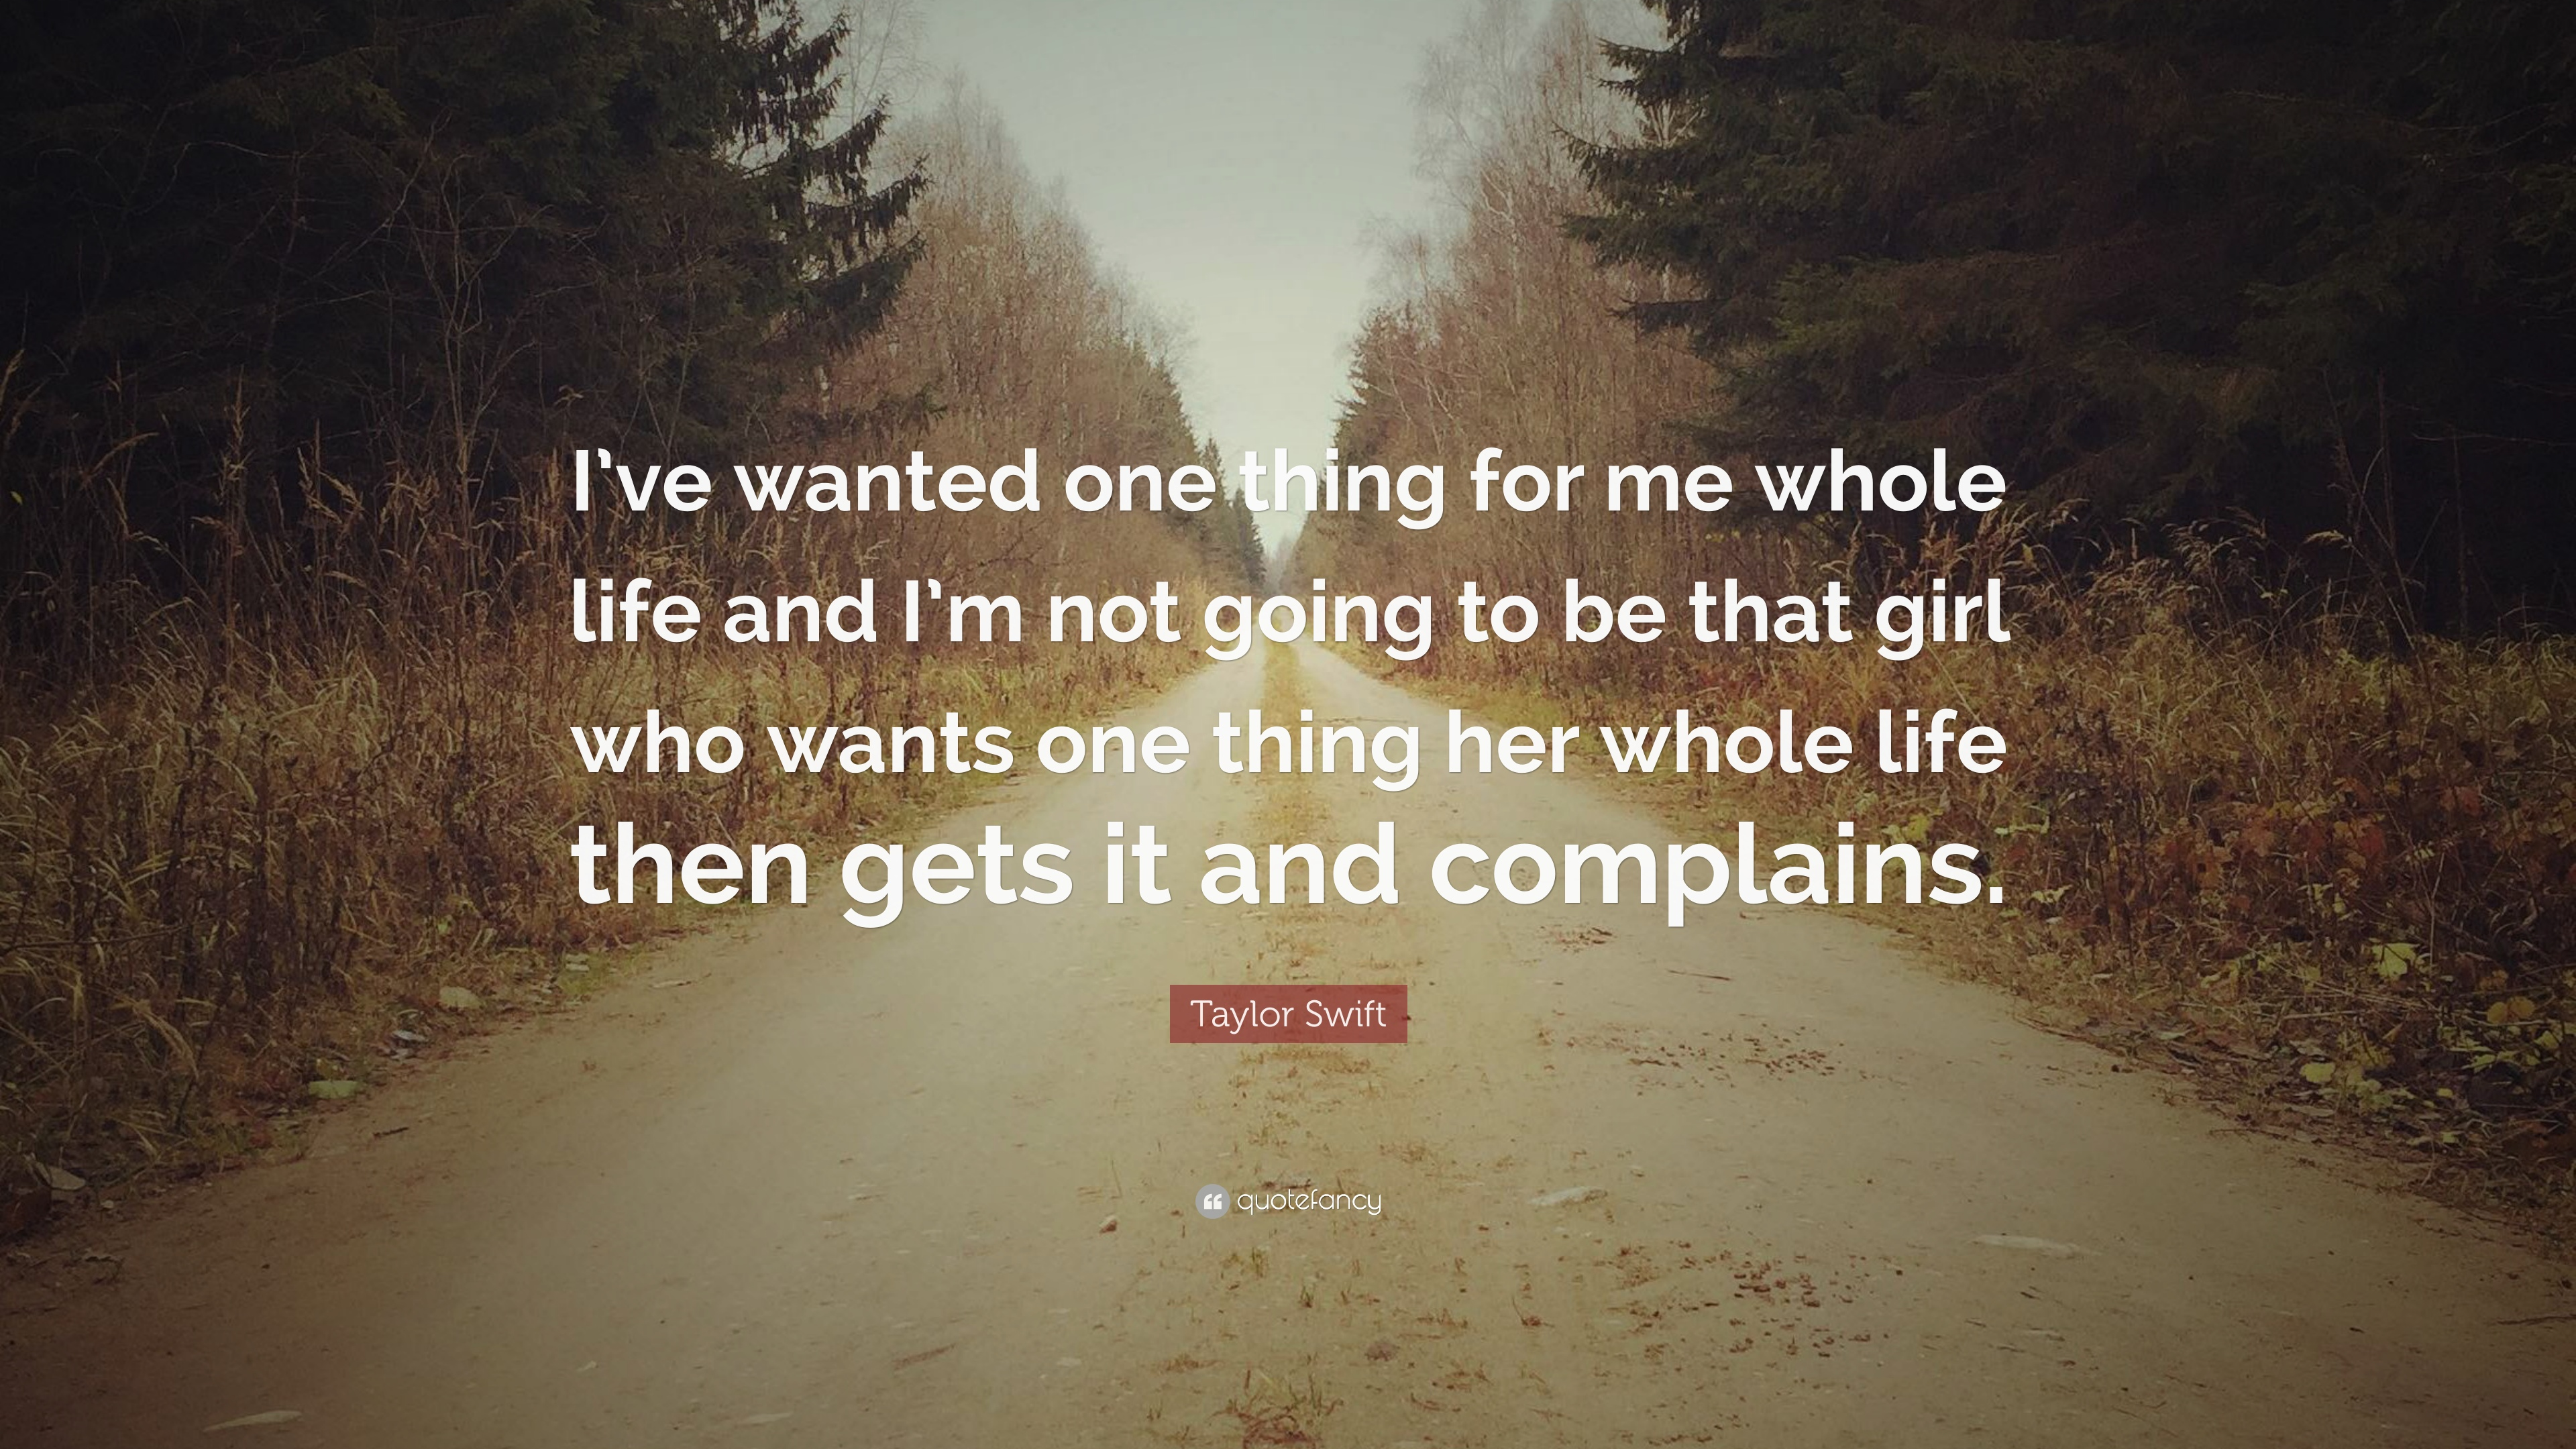 Taylor Swift Quote: U201cIu0027ve Wanted One Thing For Me Whole Life And